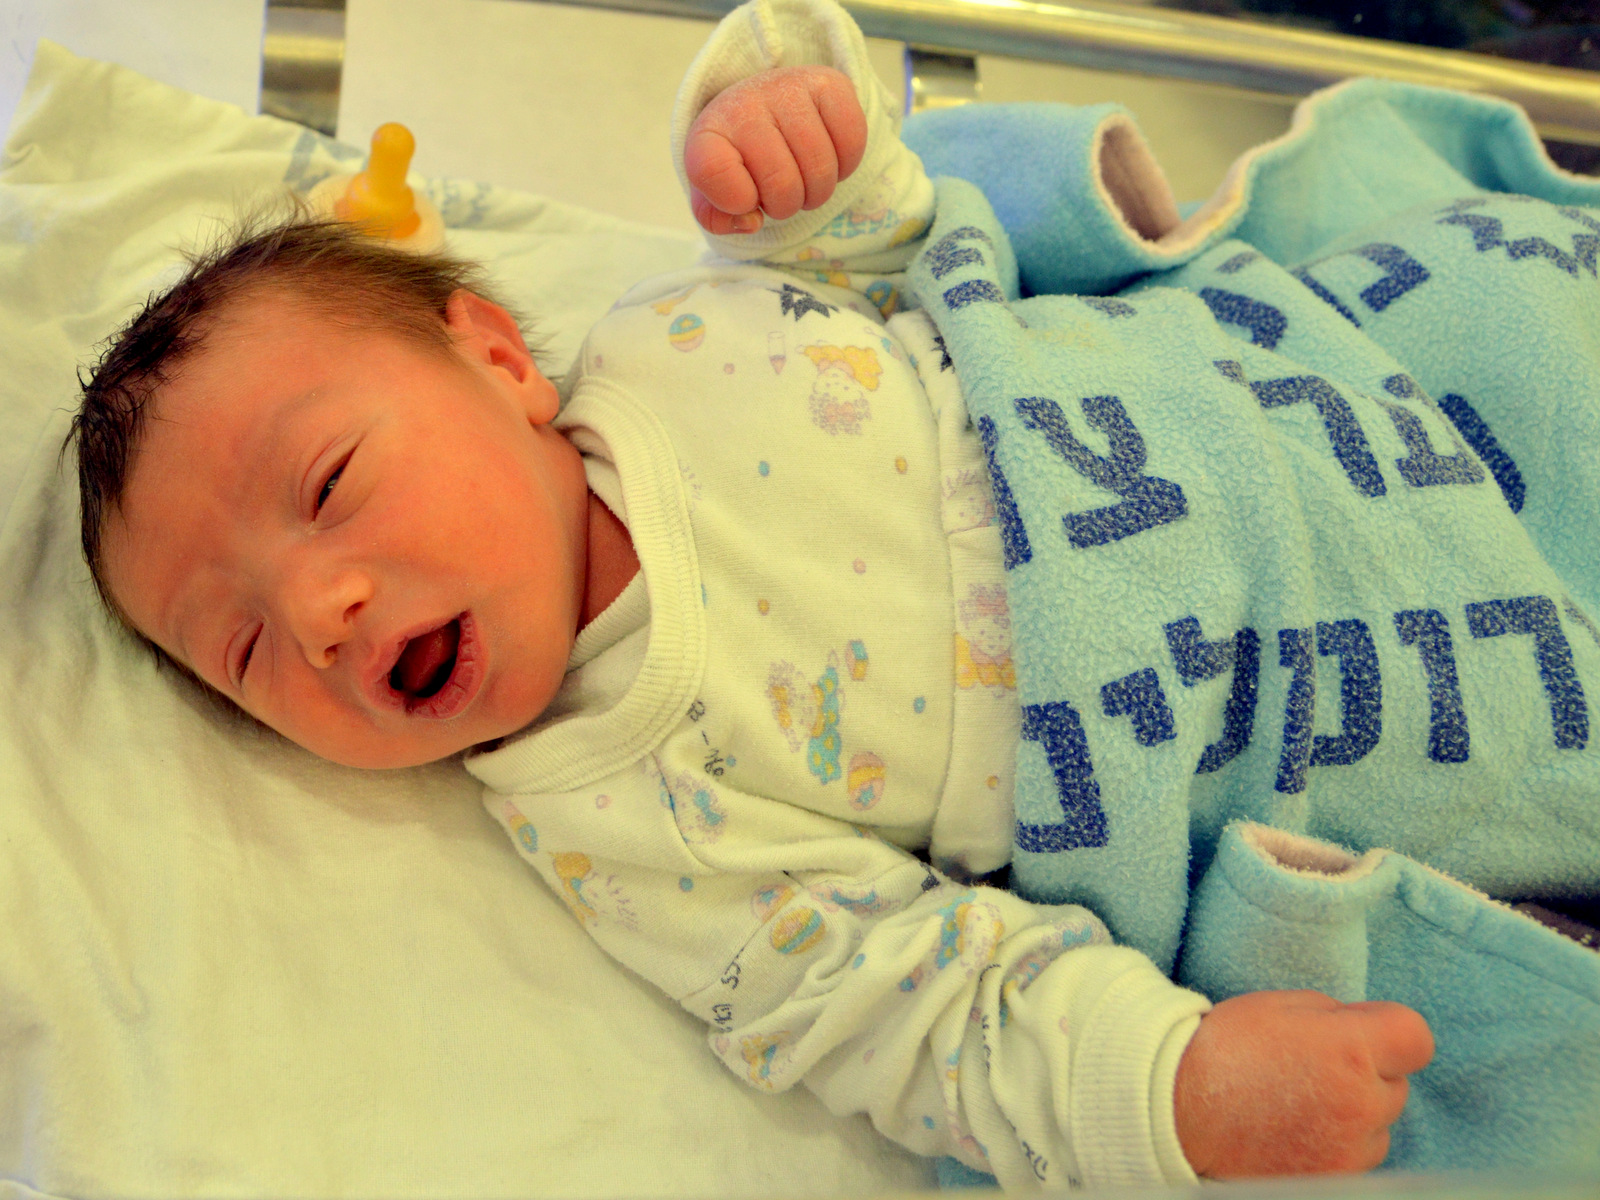 Record births at Shaare Zedek Medical Center in 2018